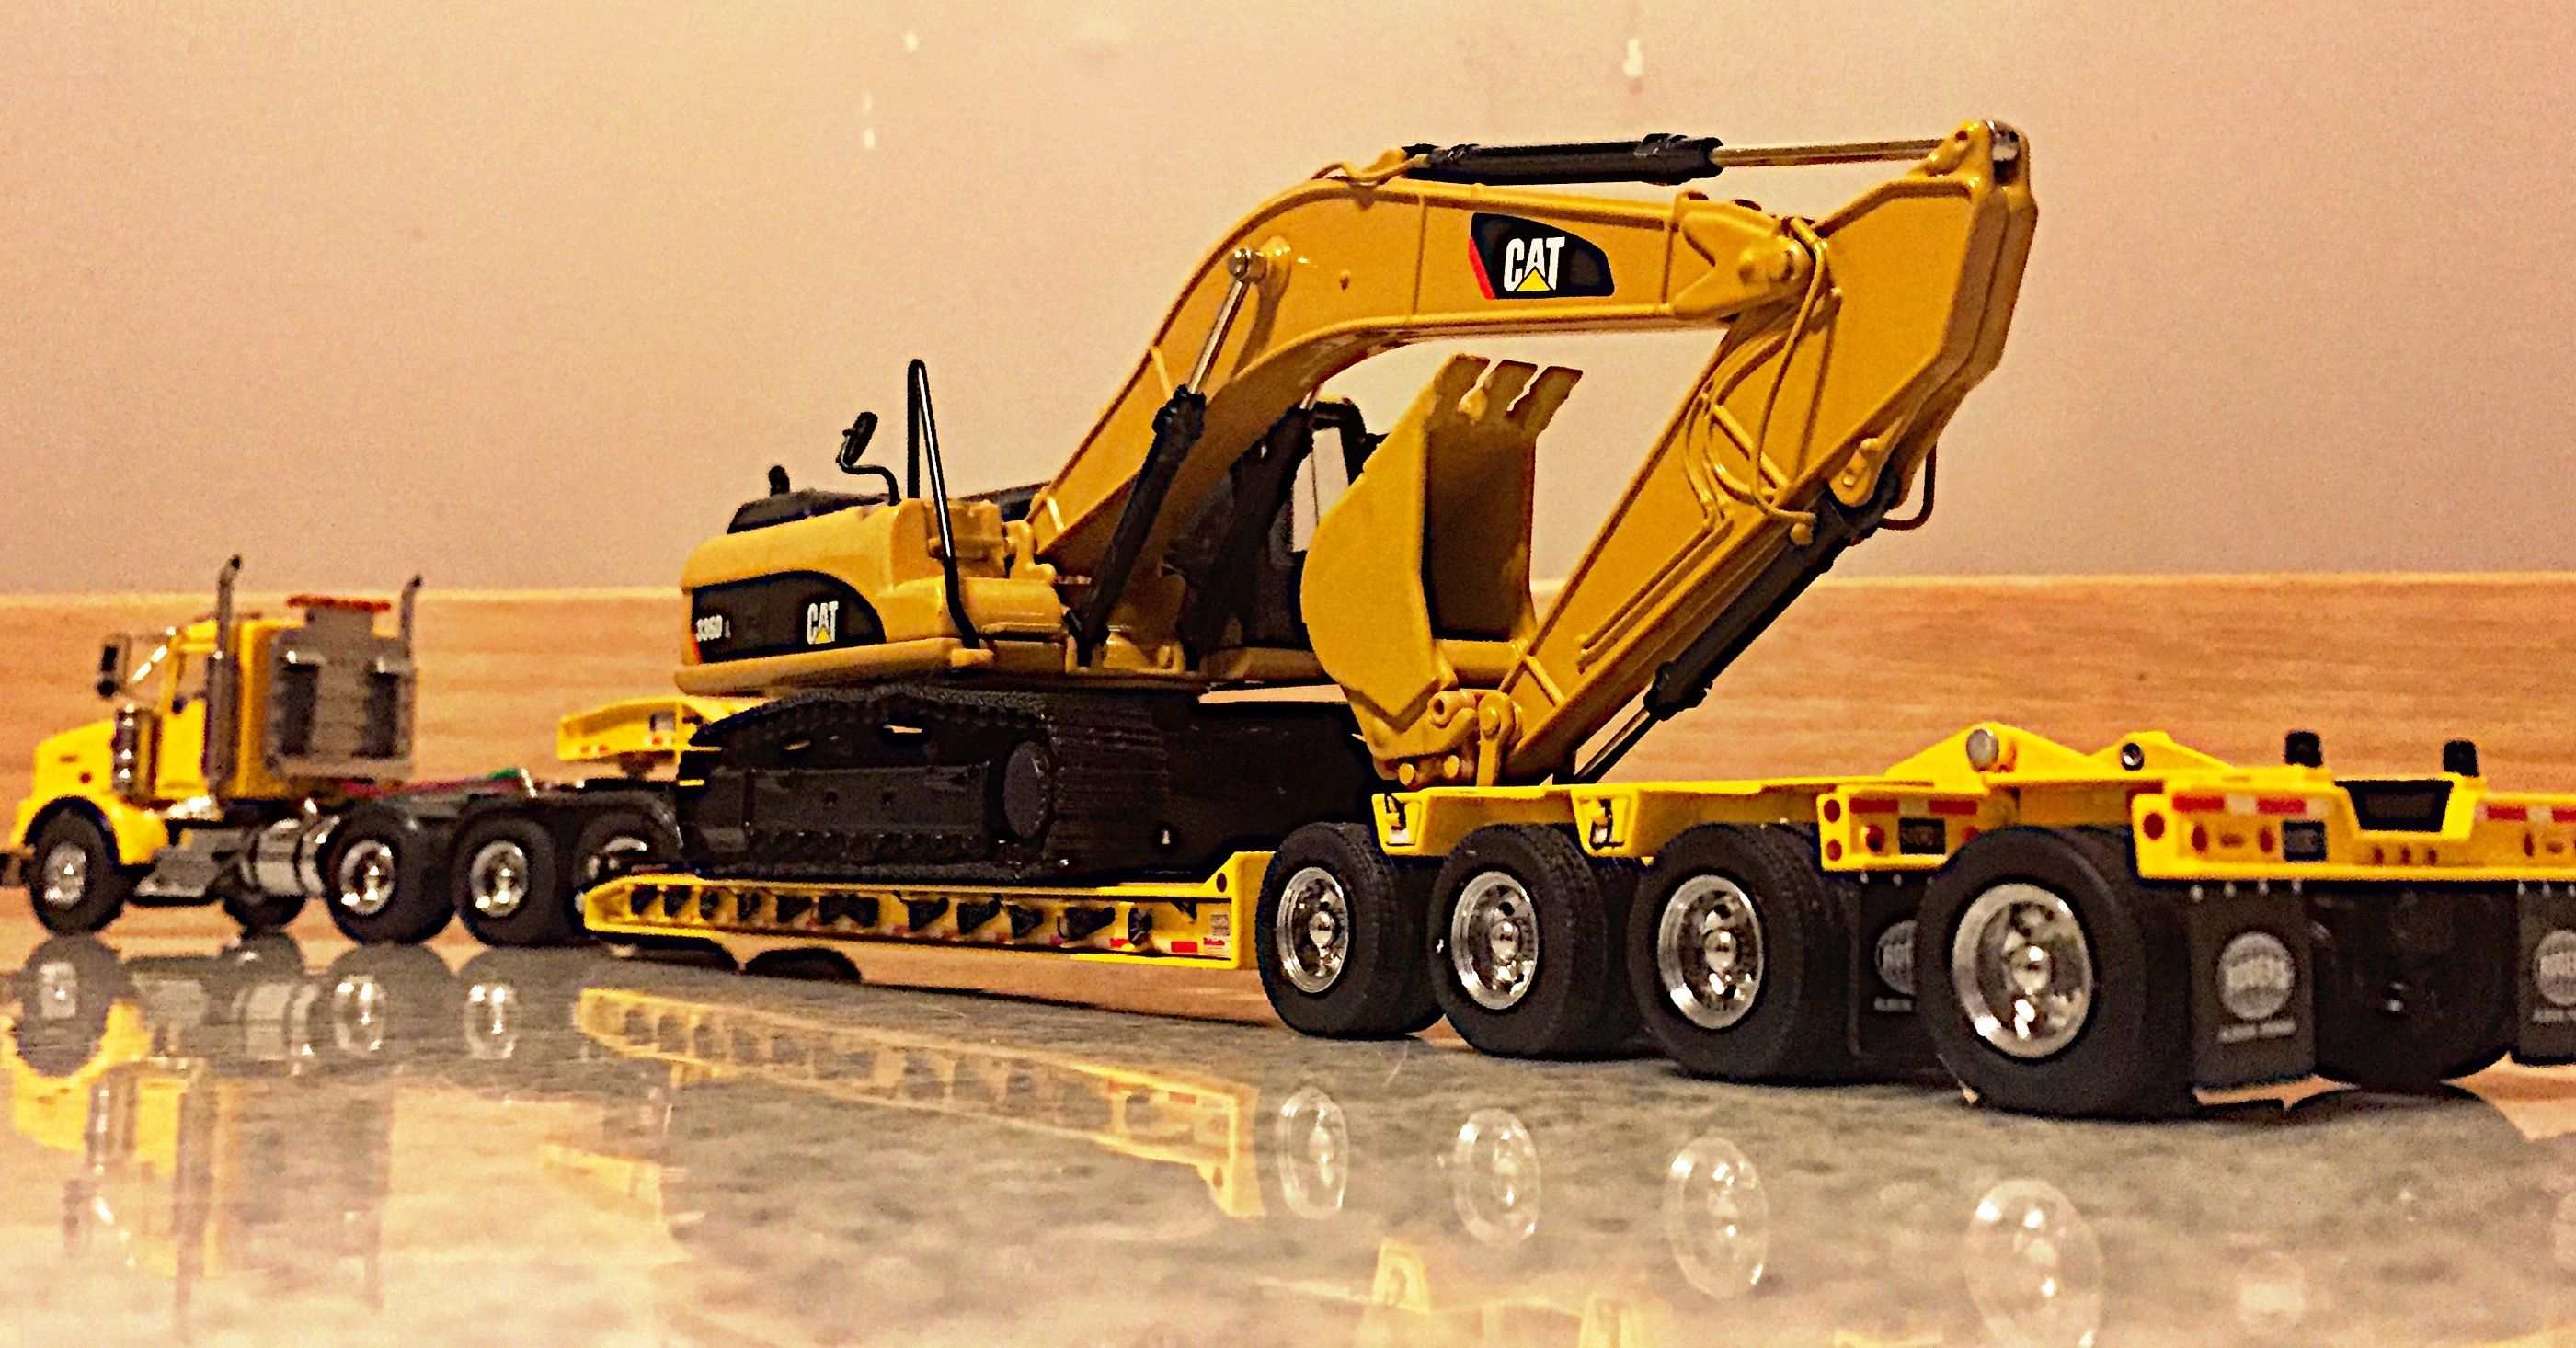 Pin by Keith Mclaughlin on Diecast construction Monster